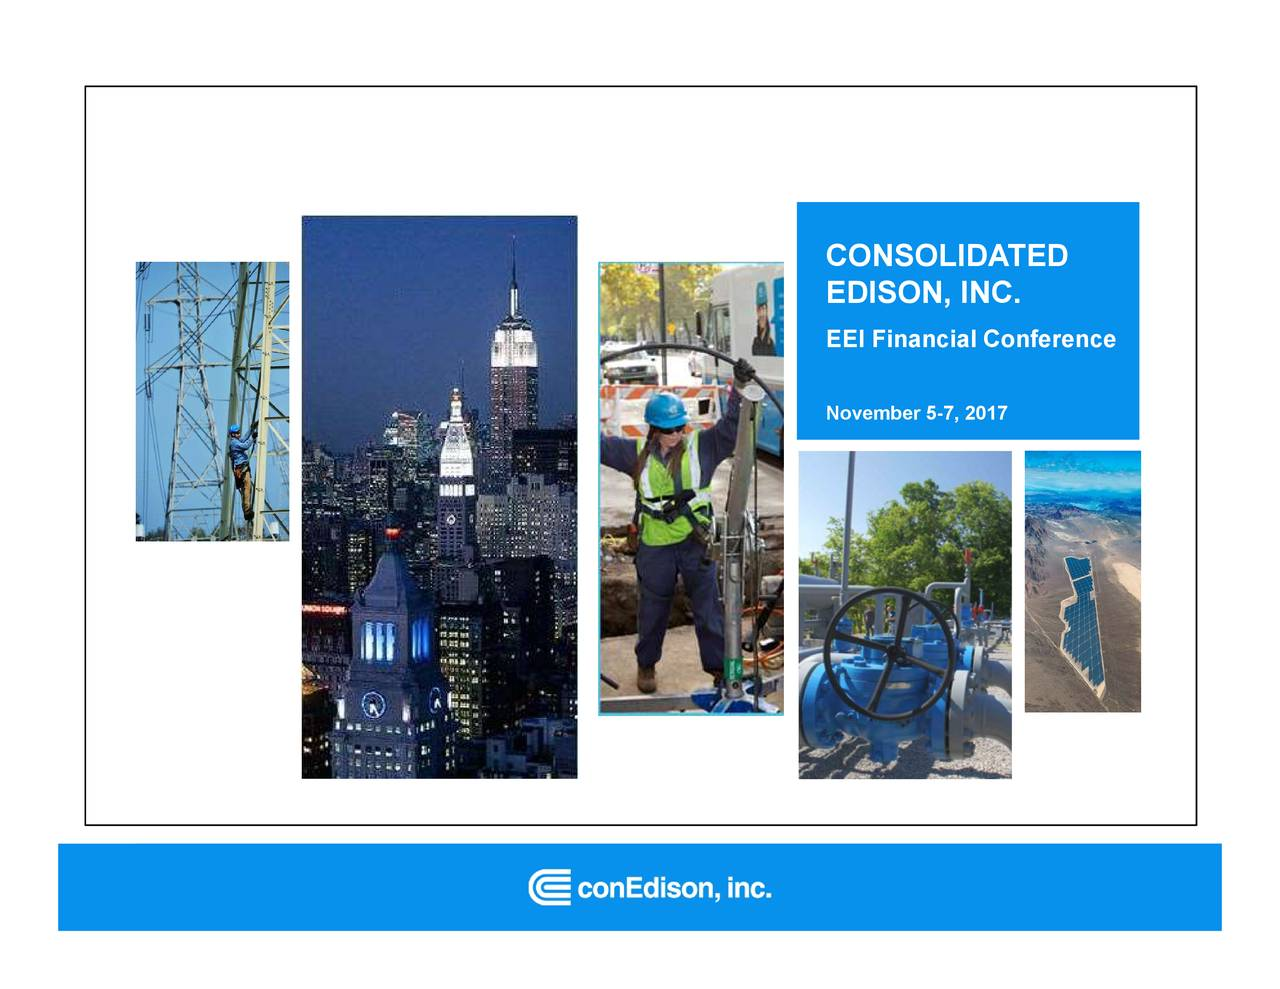 consolidated edison Engage con edison solutions energy expertise to reduce operational expenses, upgrade building systems, & optimize facility performance with little or no capital outlay.